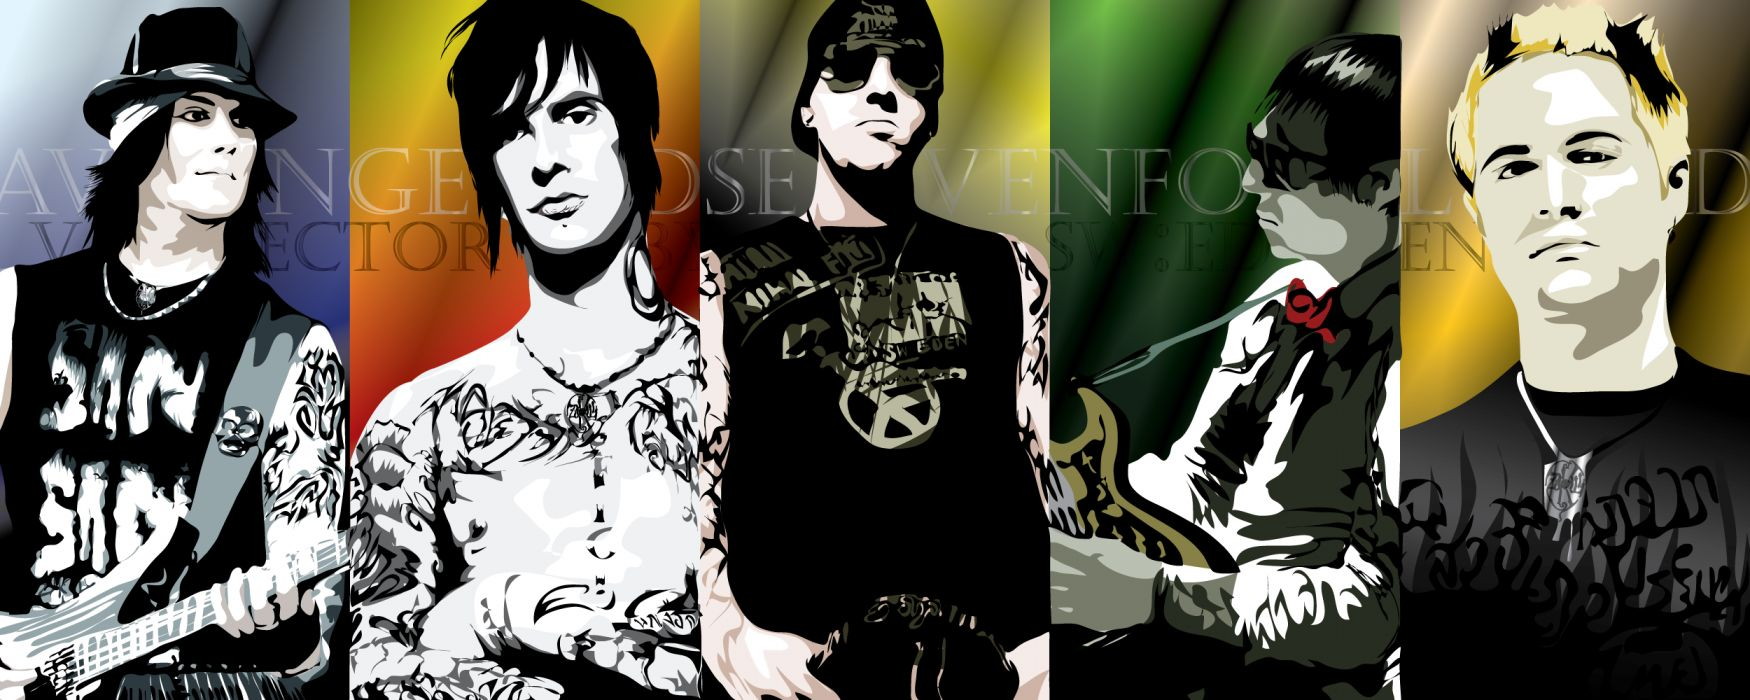 Avenged Sevenfold heavy metal rock      v wallpaper